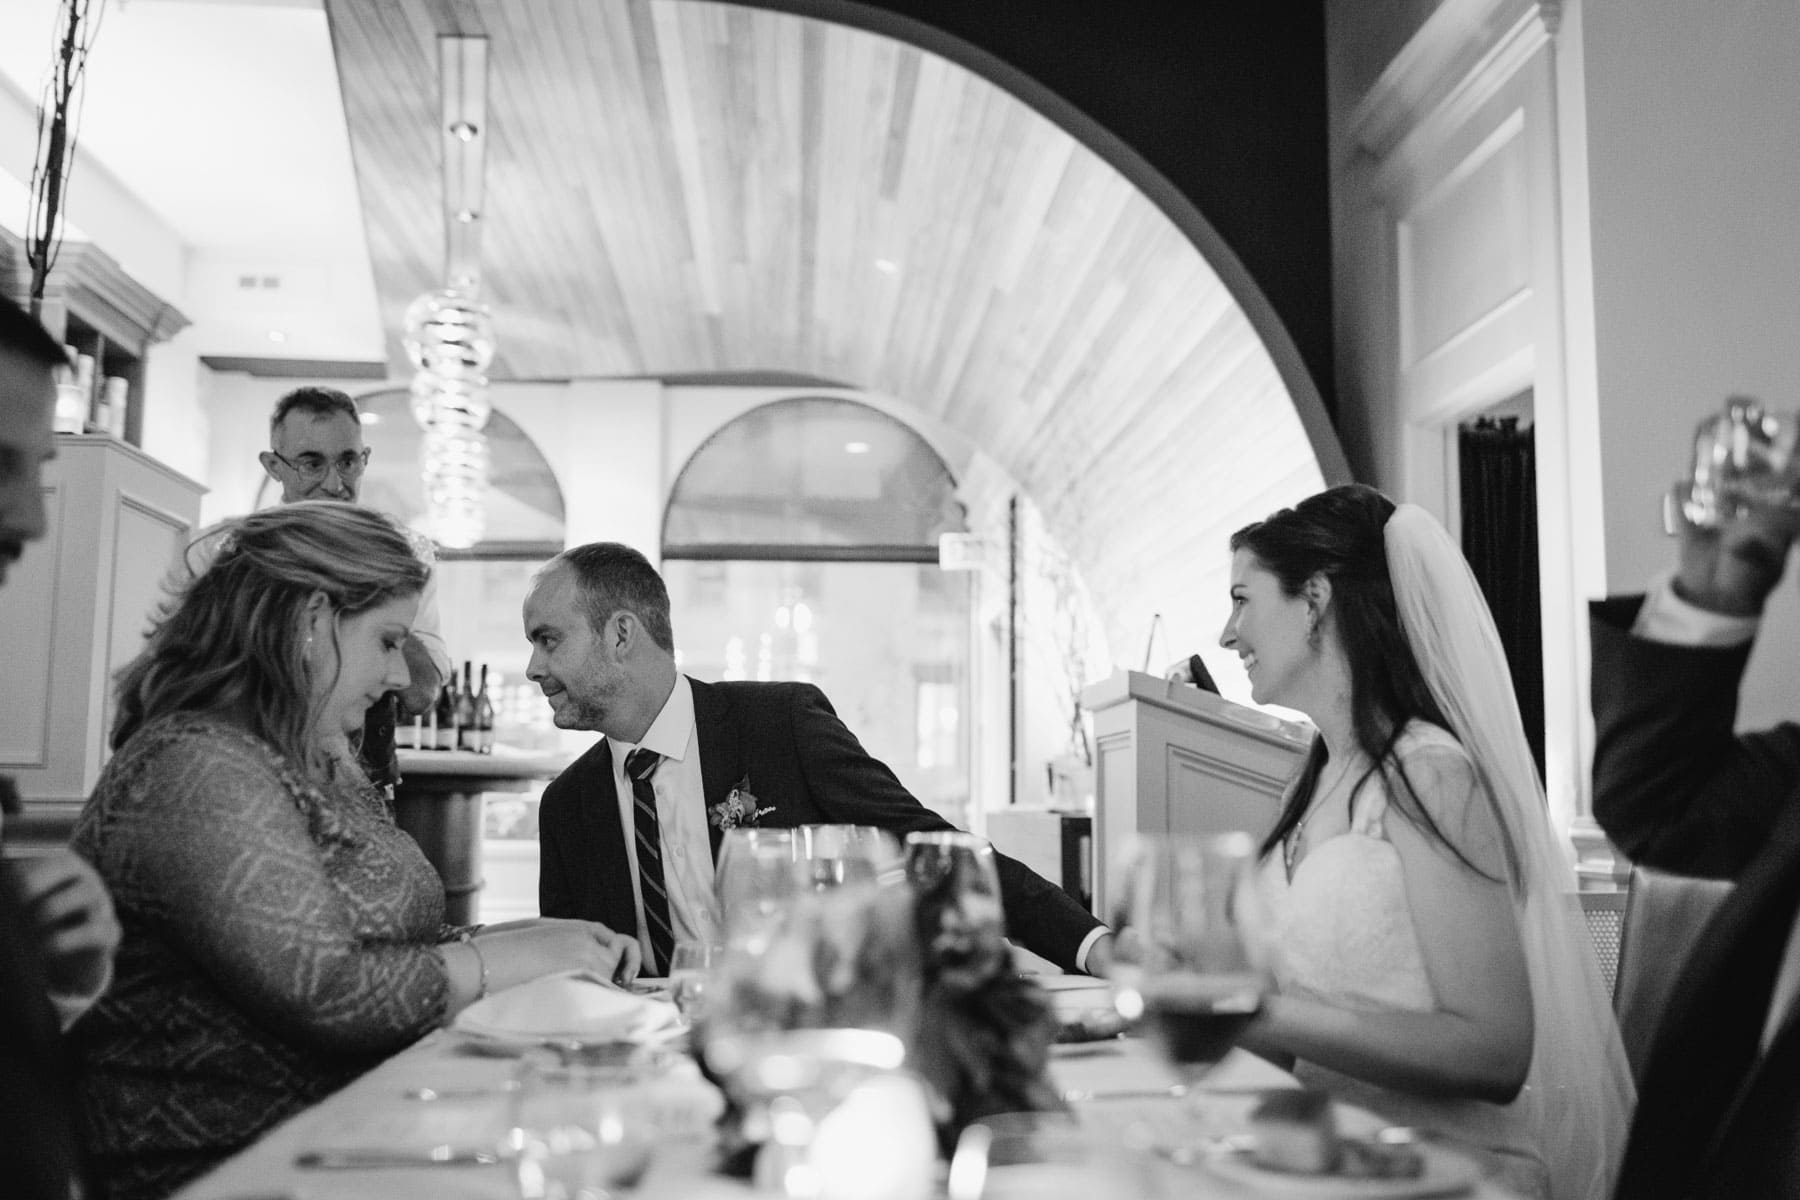 The groom talks to someone off-frame while holding the bride's hand at the dinner table at this Splendido Restaurant wedding reception.